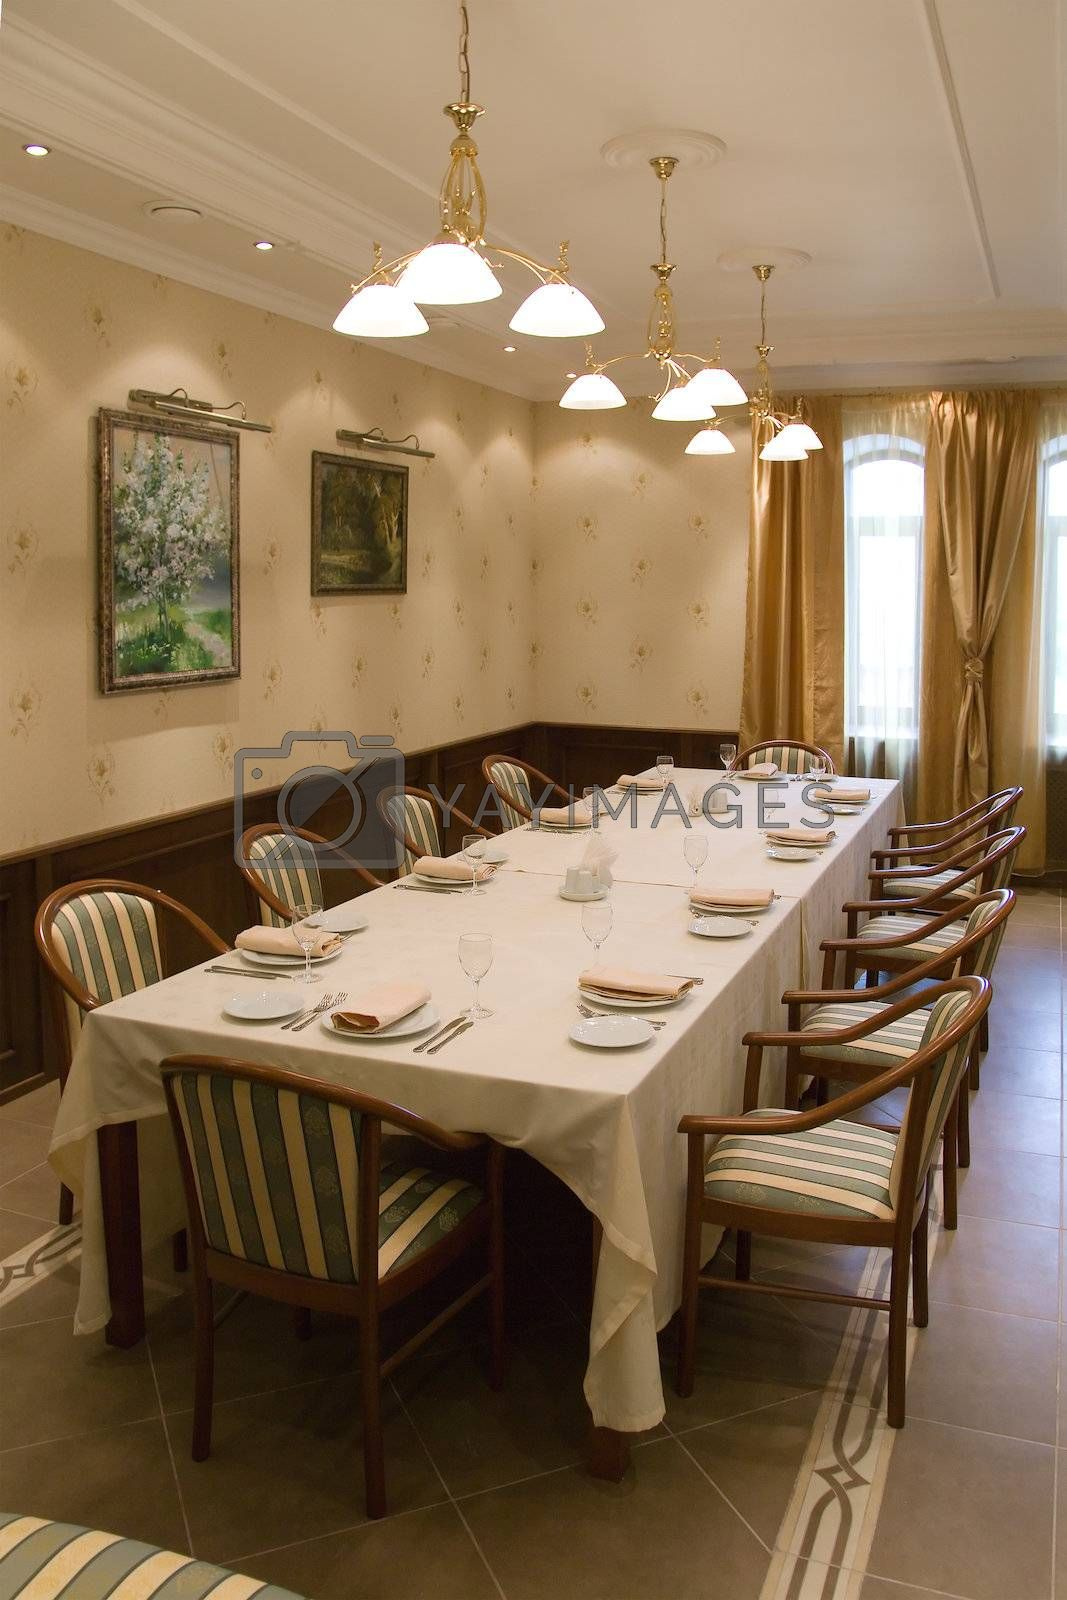 Table with chairs prepared for banquet in banquet-hall